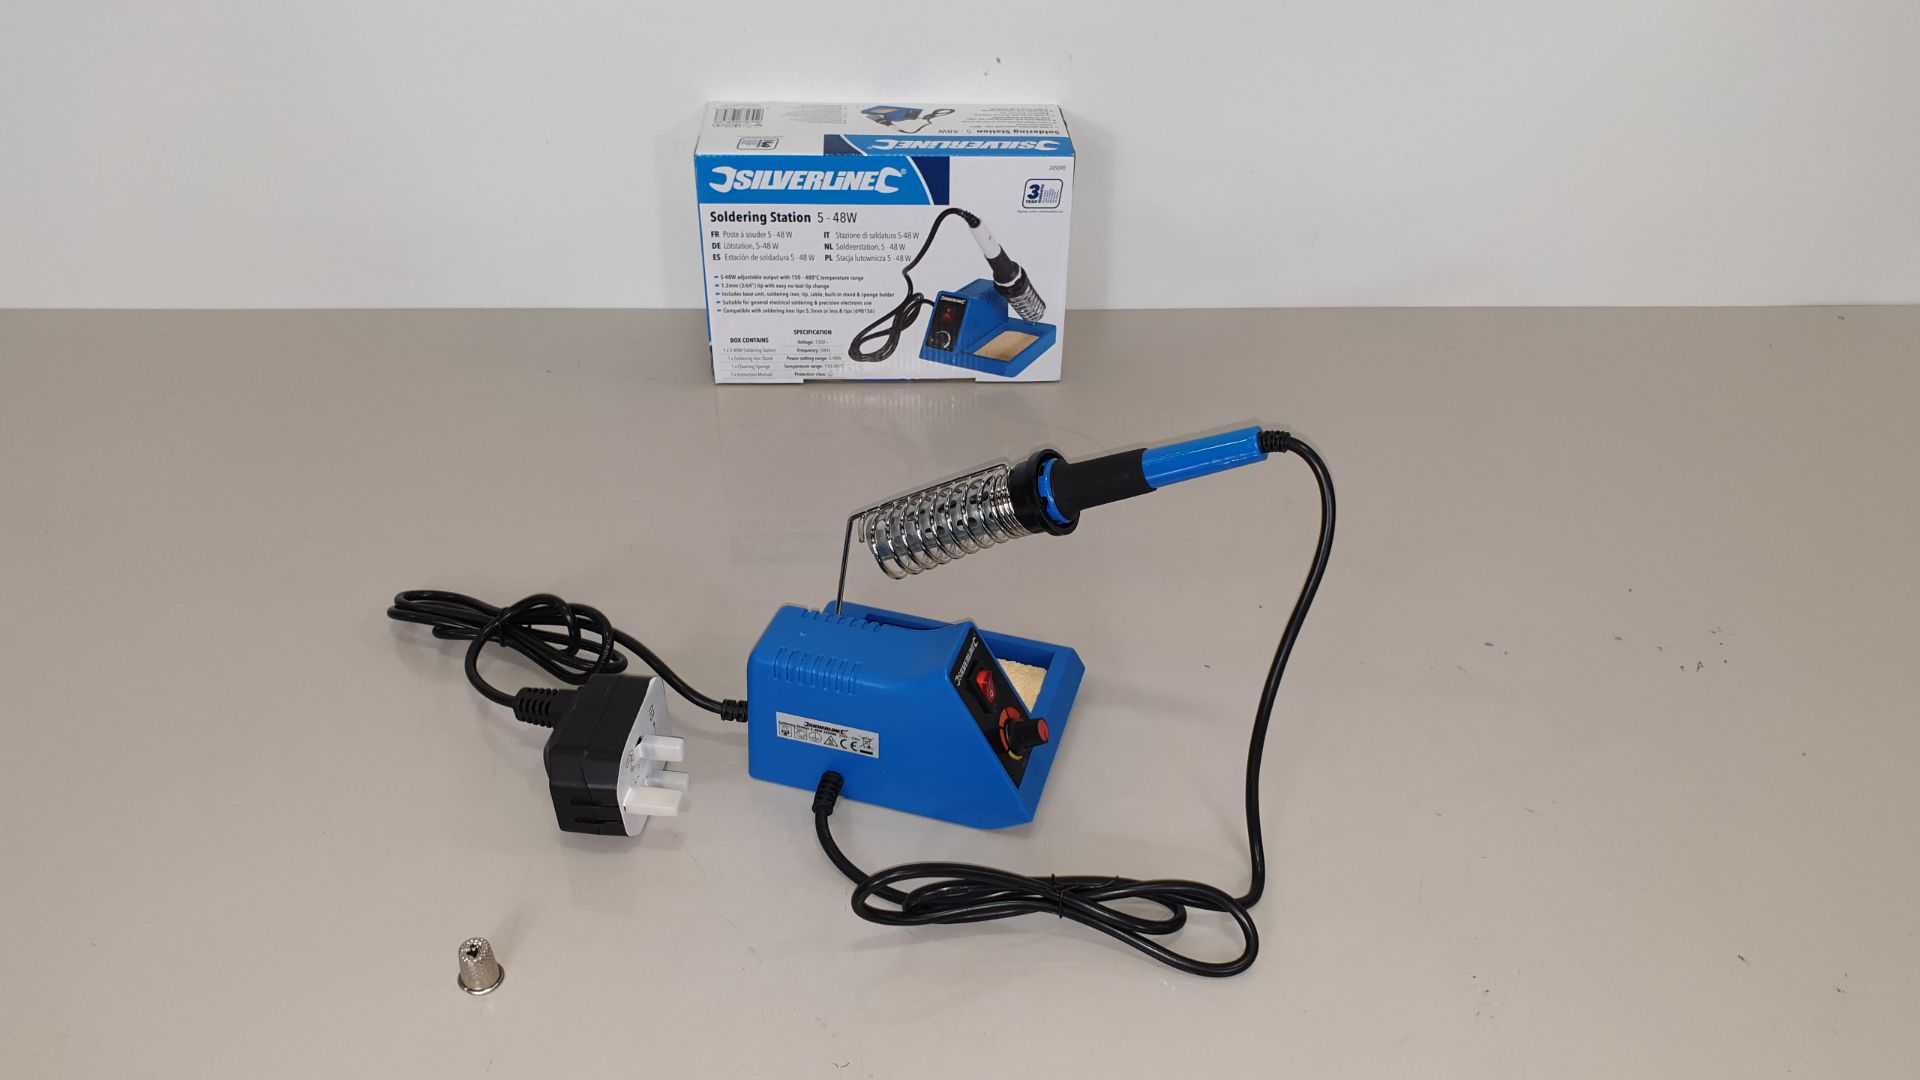 Lot 225 - 20 X BRAND NEW SILVERLINE SOLDERING STATIONS 5-48W (PROD CODE 245090) - TRADE PRICE £31.34 EACH (EXC